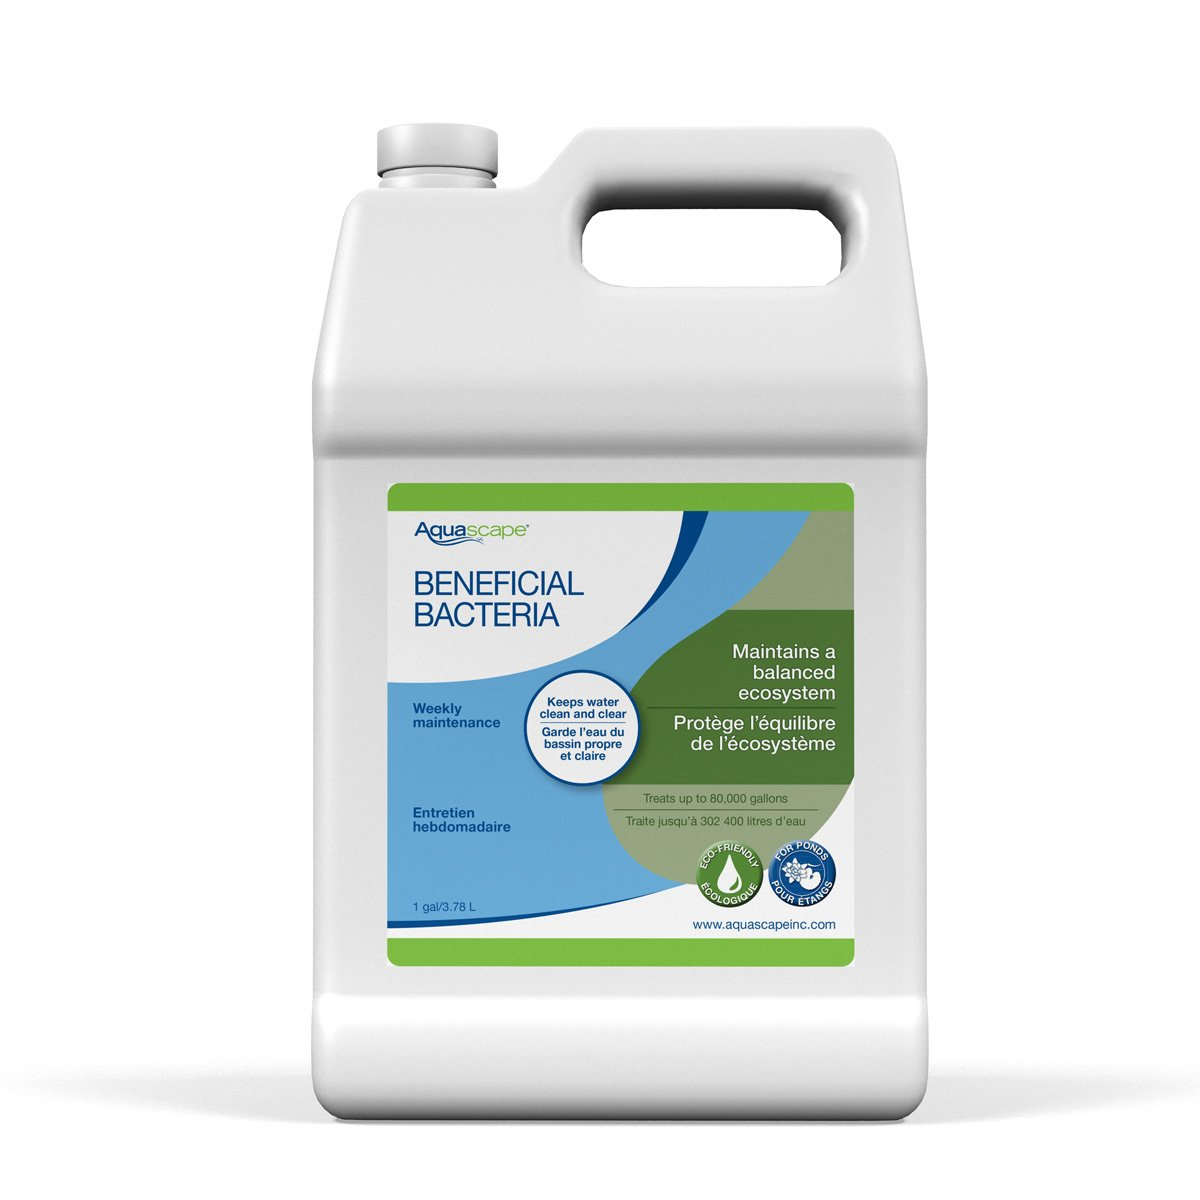 Aquascape Beneficial Bacteria for Pond and Water Features, Liquid, 1-Gallon Bottle | 98885 by Aquascape